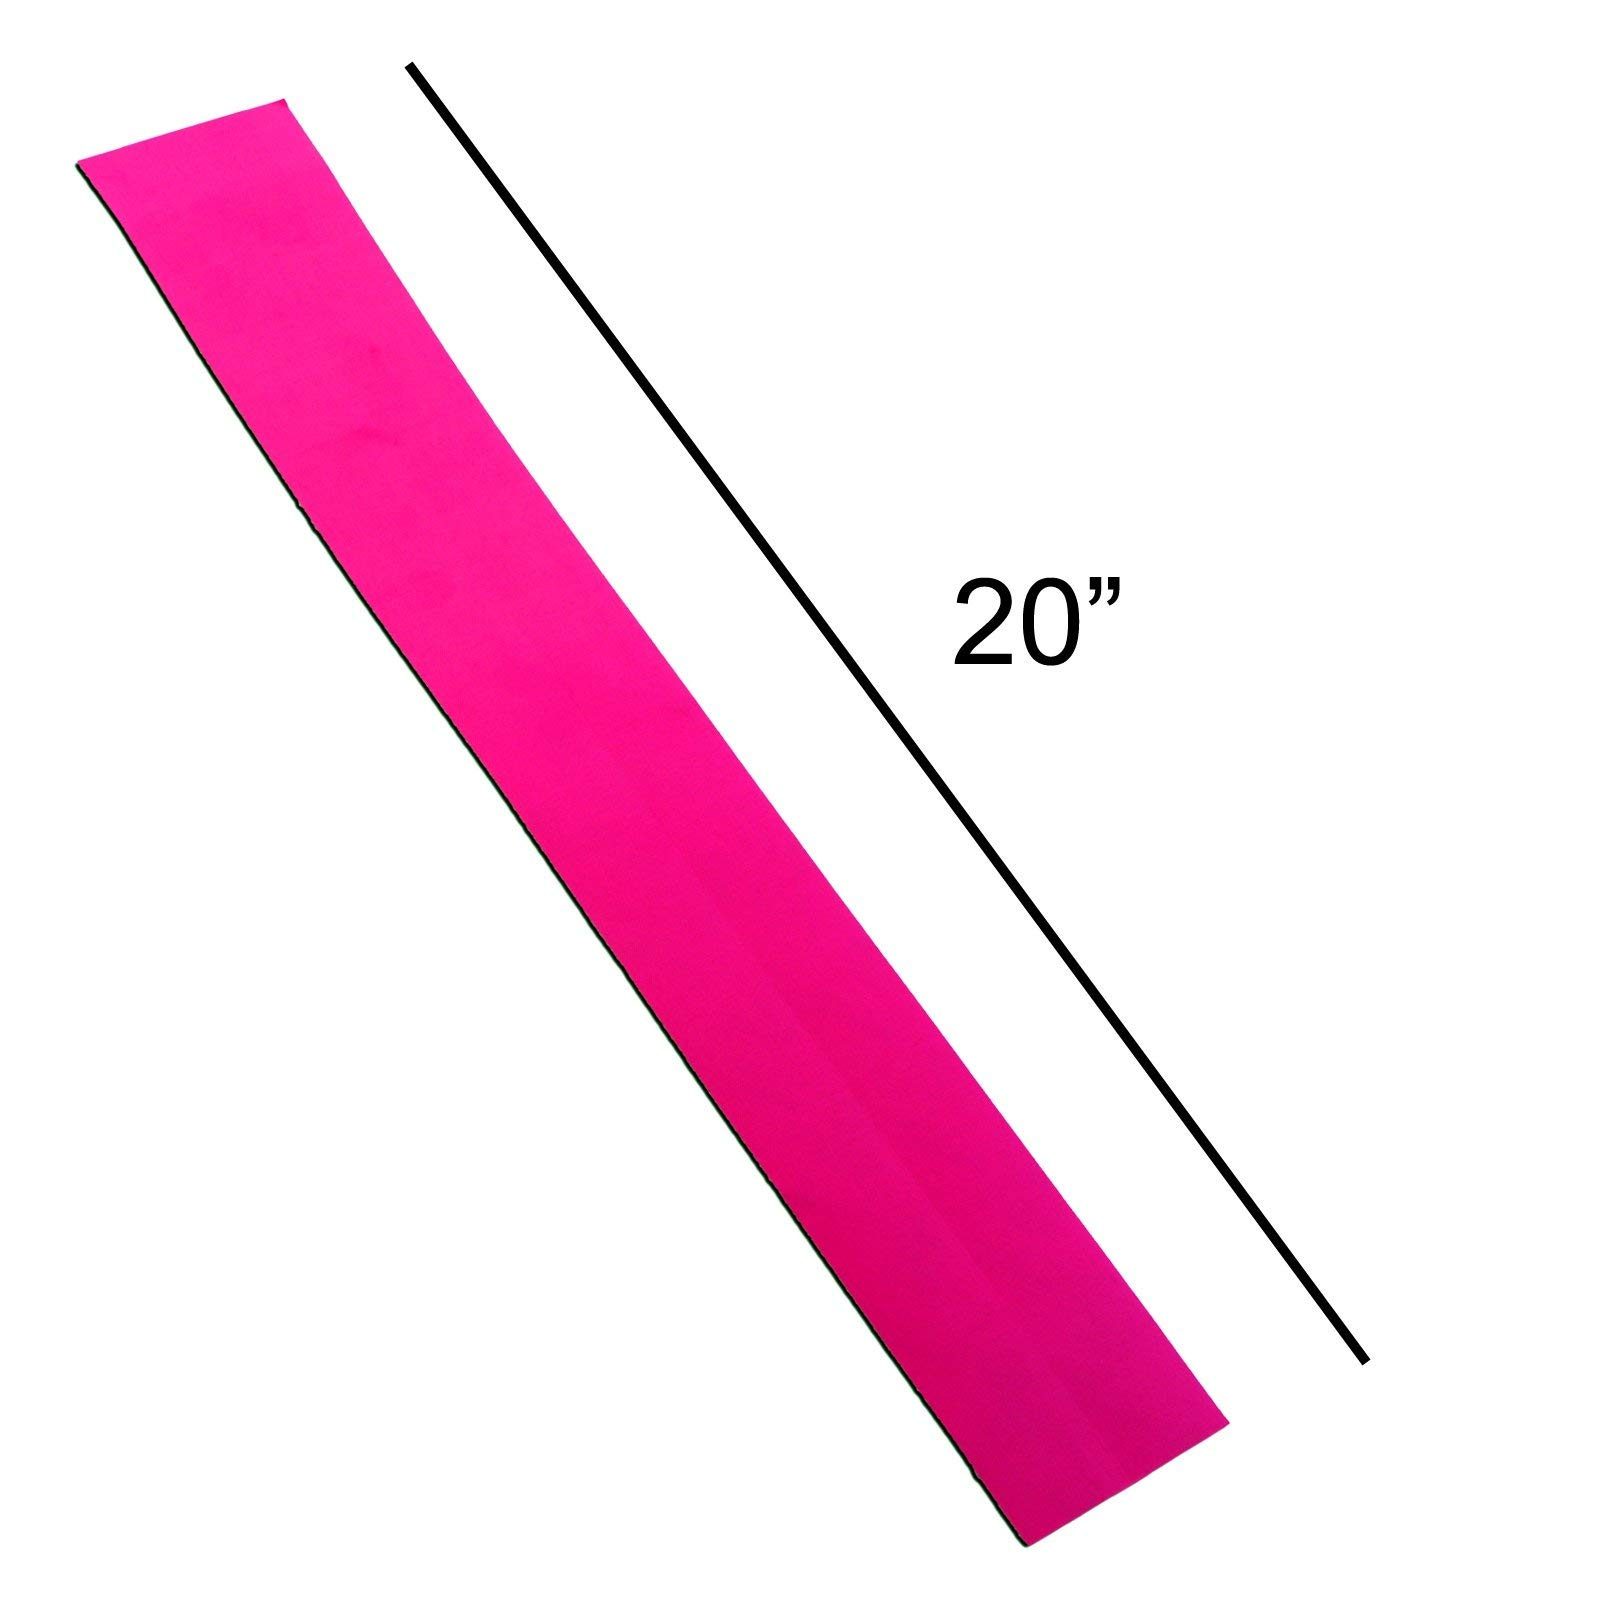 """Gear Aid Tenacious Tape Nylon Repair Tape for Fabric and Vinyl, 3"""" x 20"""", (Pink) by Gear Aid (Image #6)"""